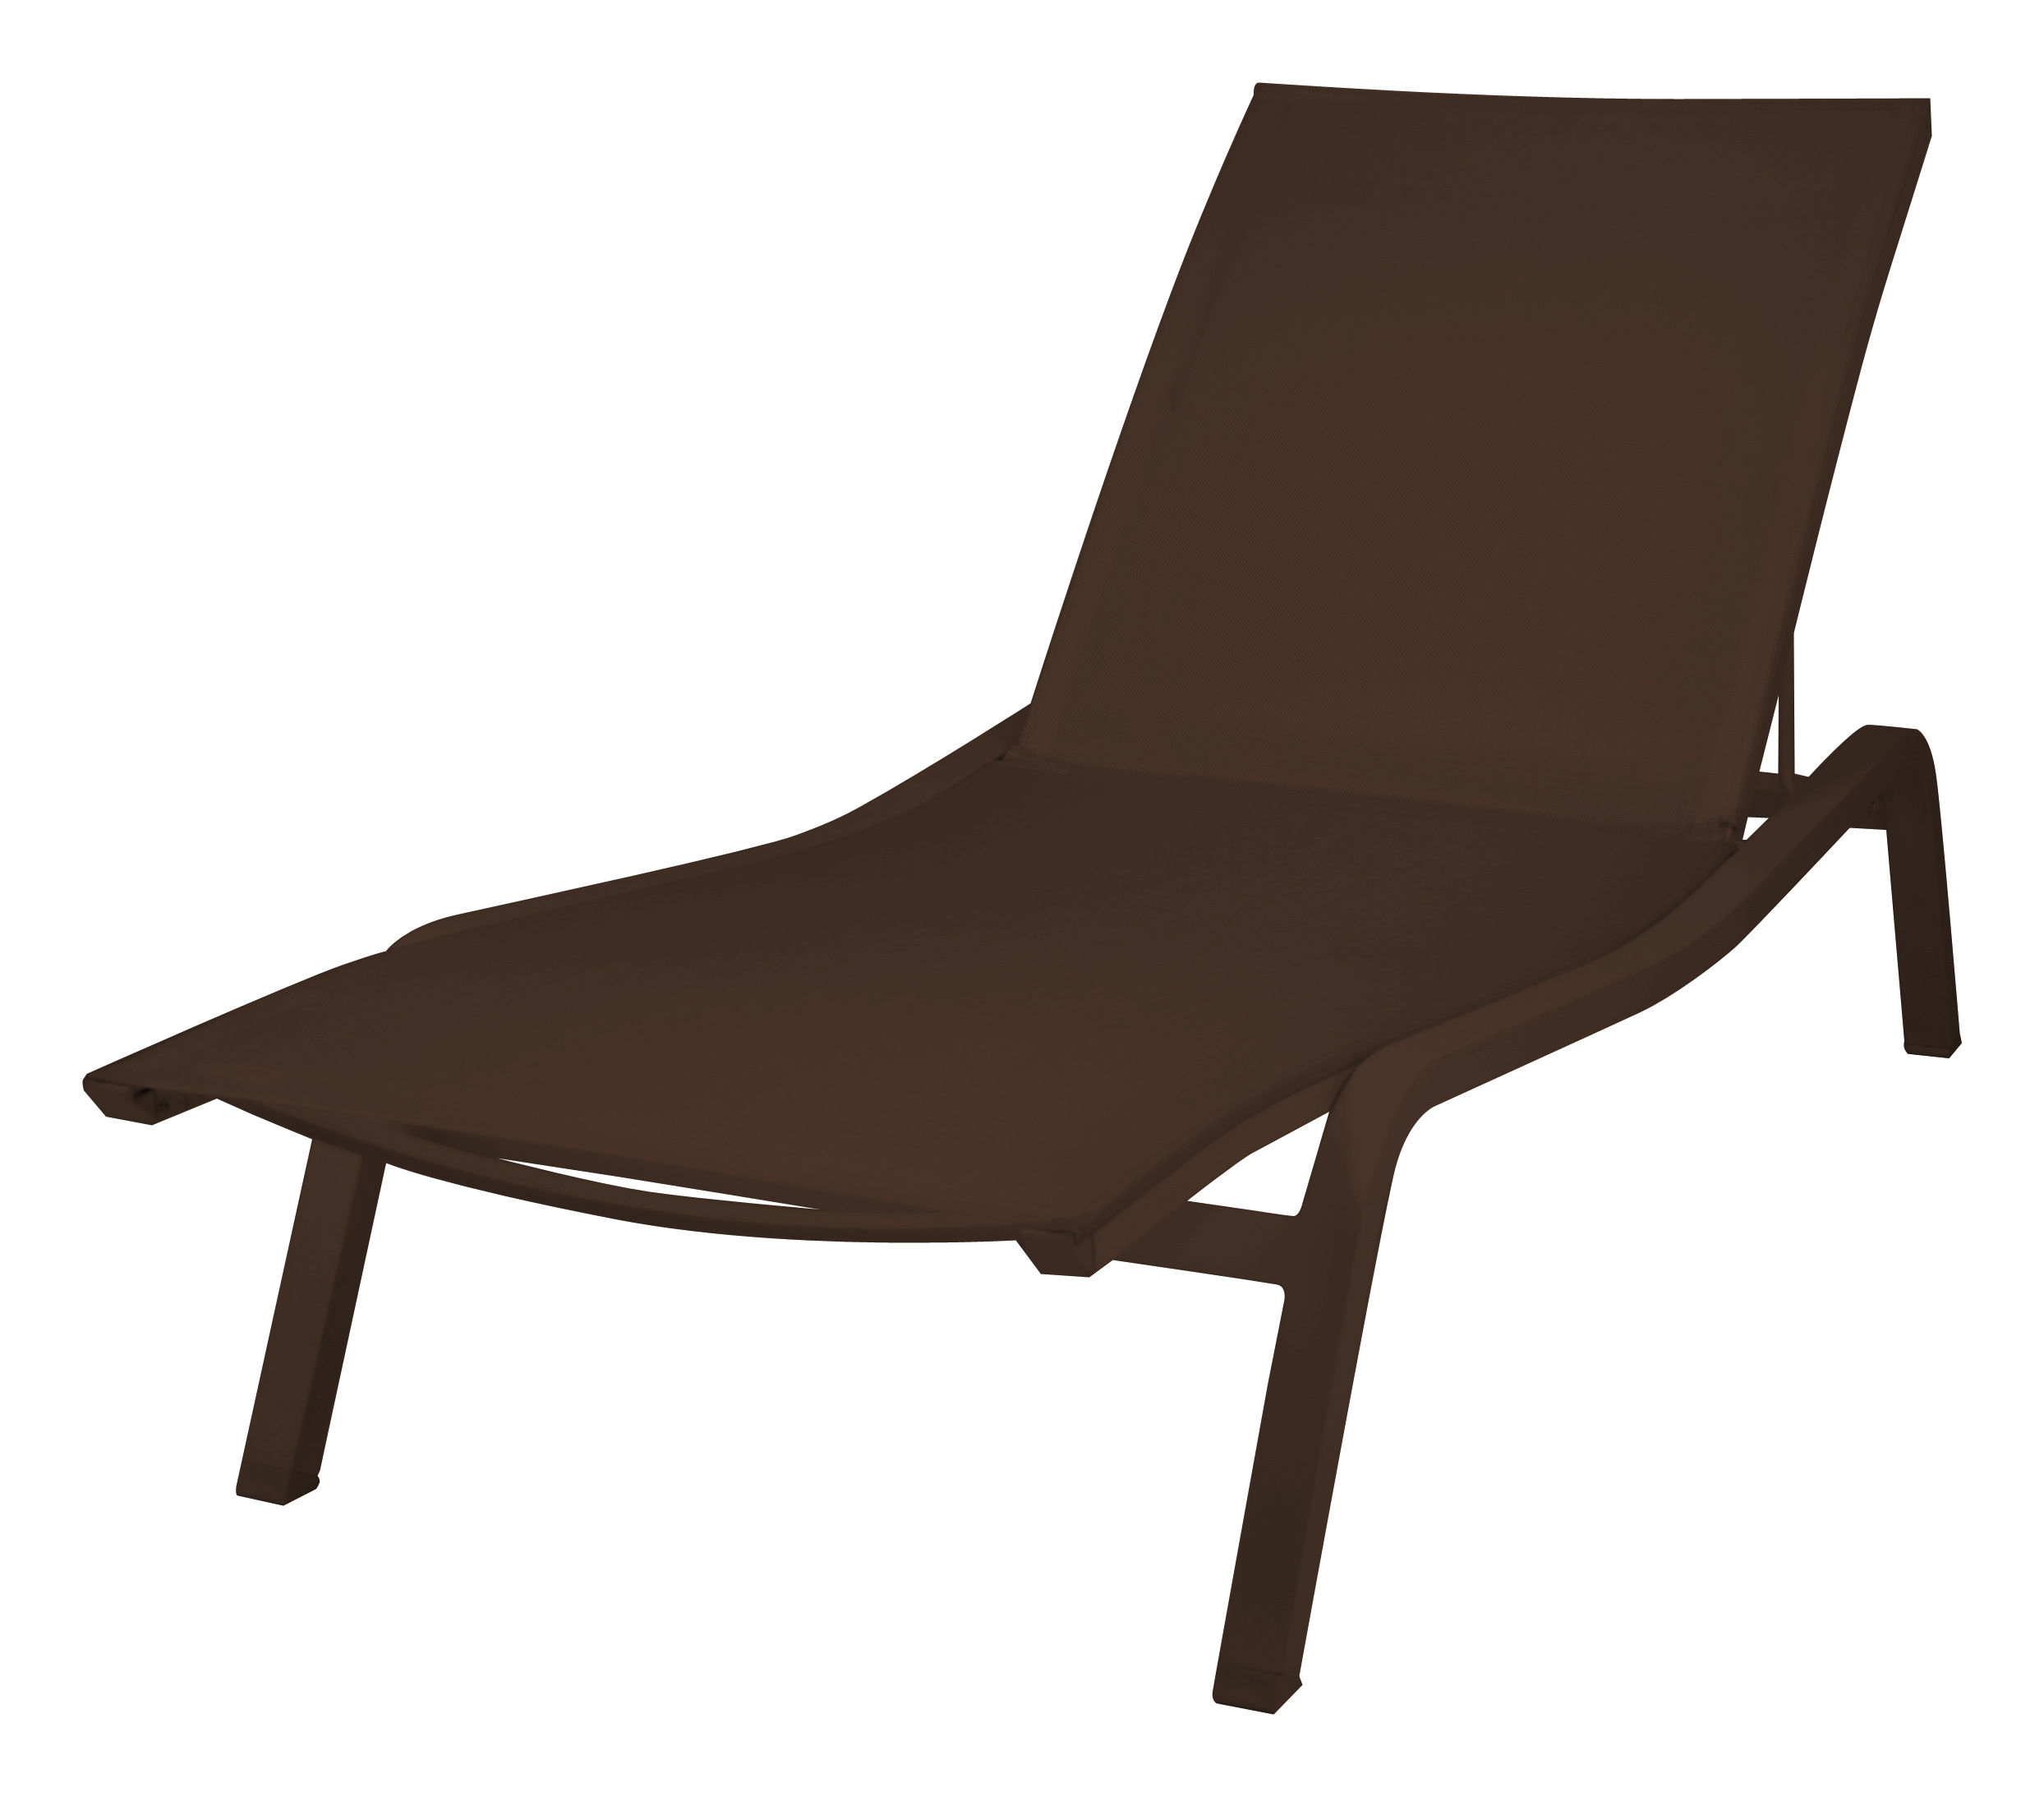 Outdoor - Sun Loungers & Hammocks - Alizé XS Sun lounger  - 3 positions by Fermob - Russet - Lacquered aluminium, Polyester cloth